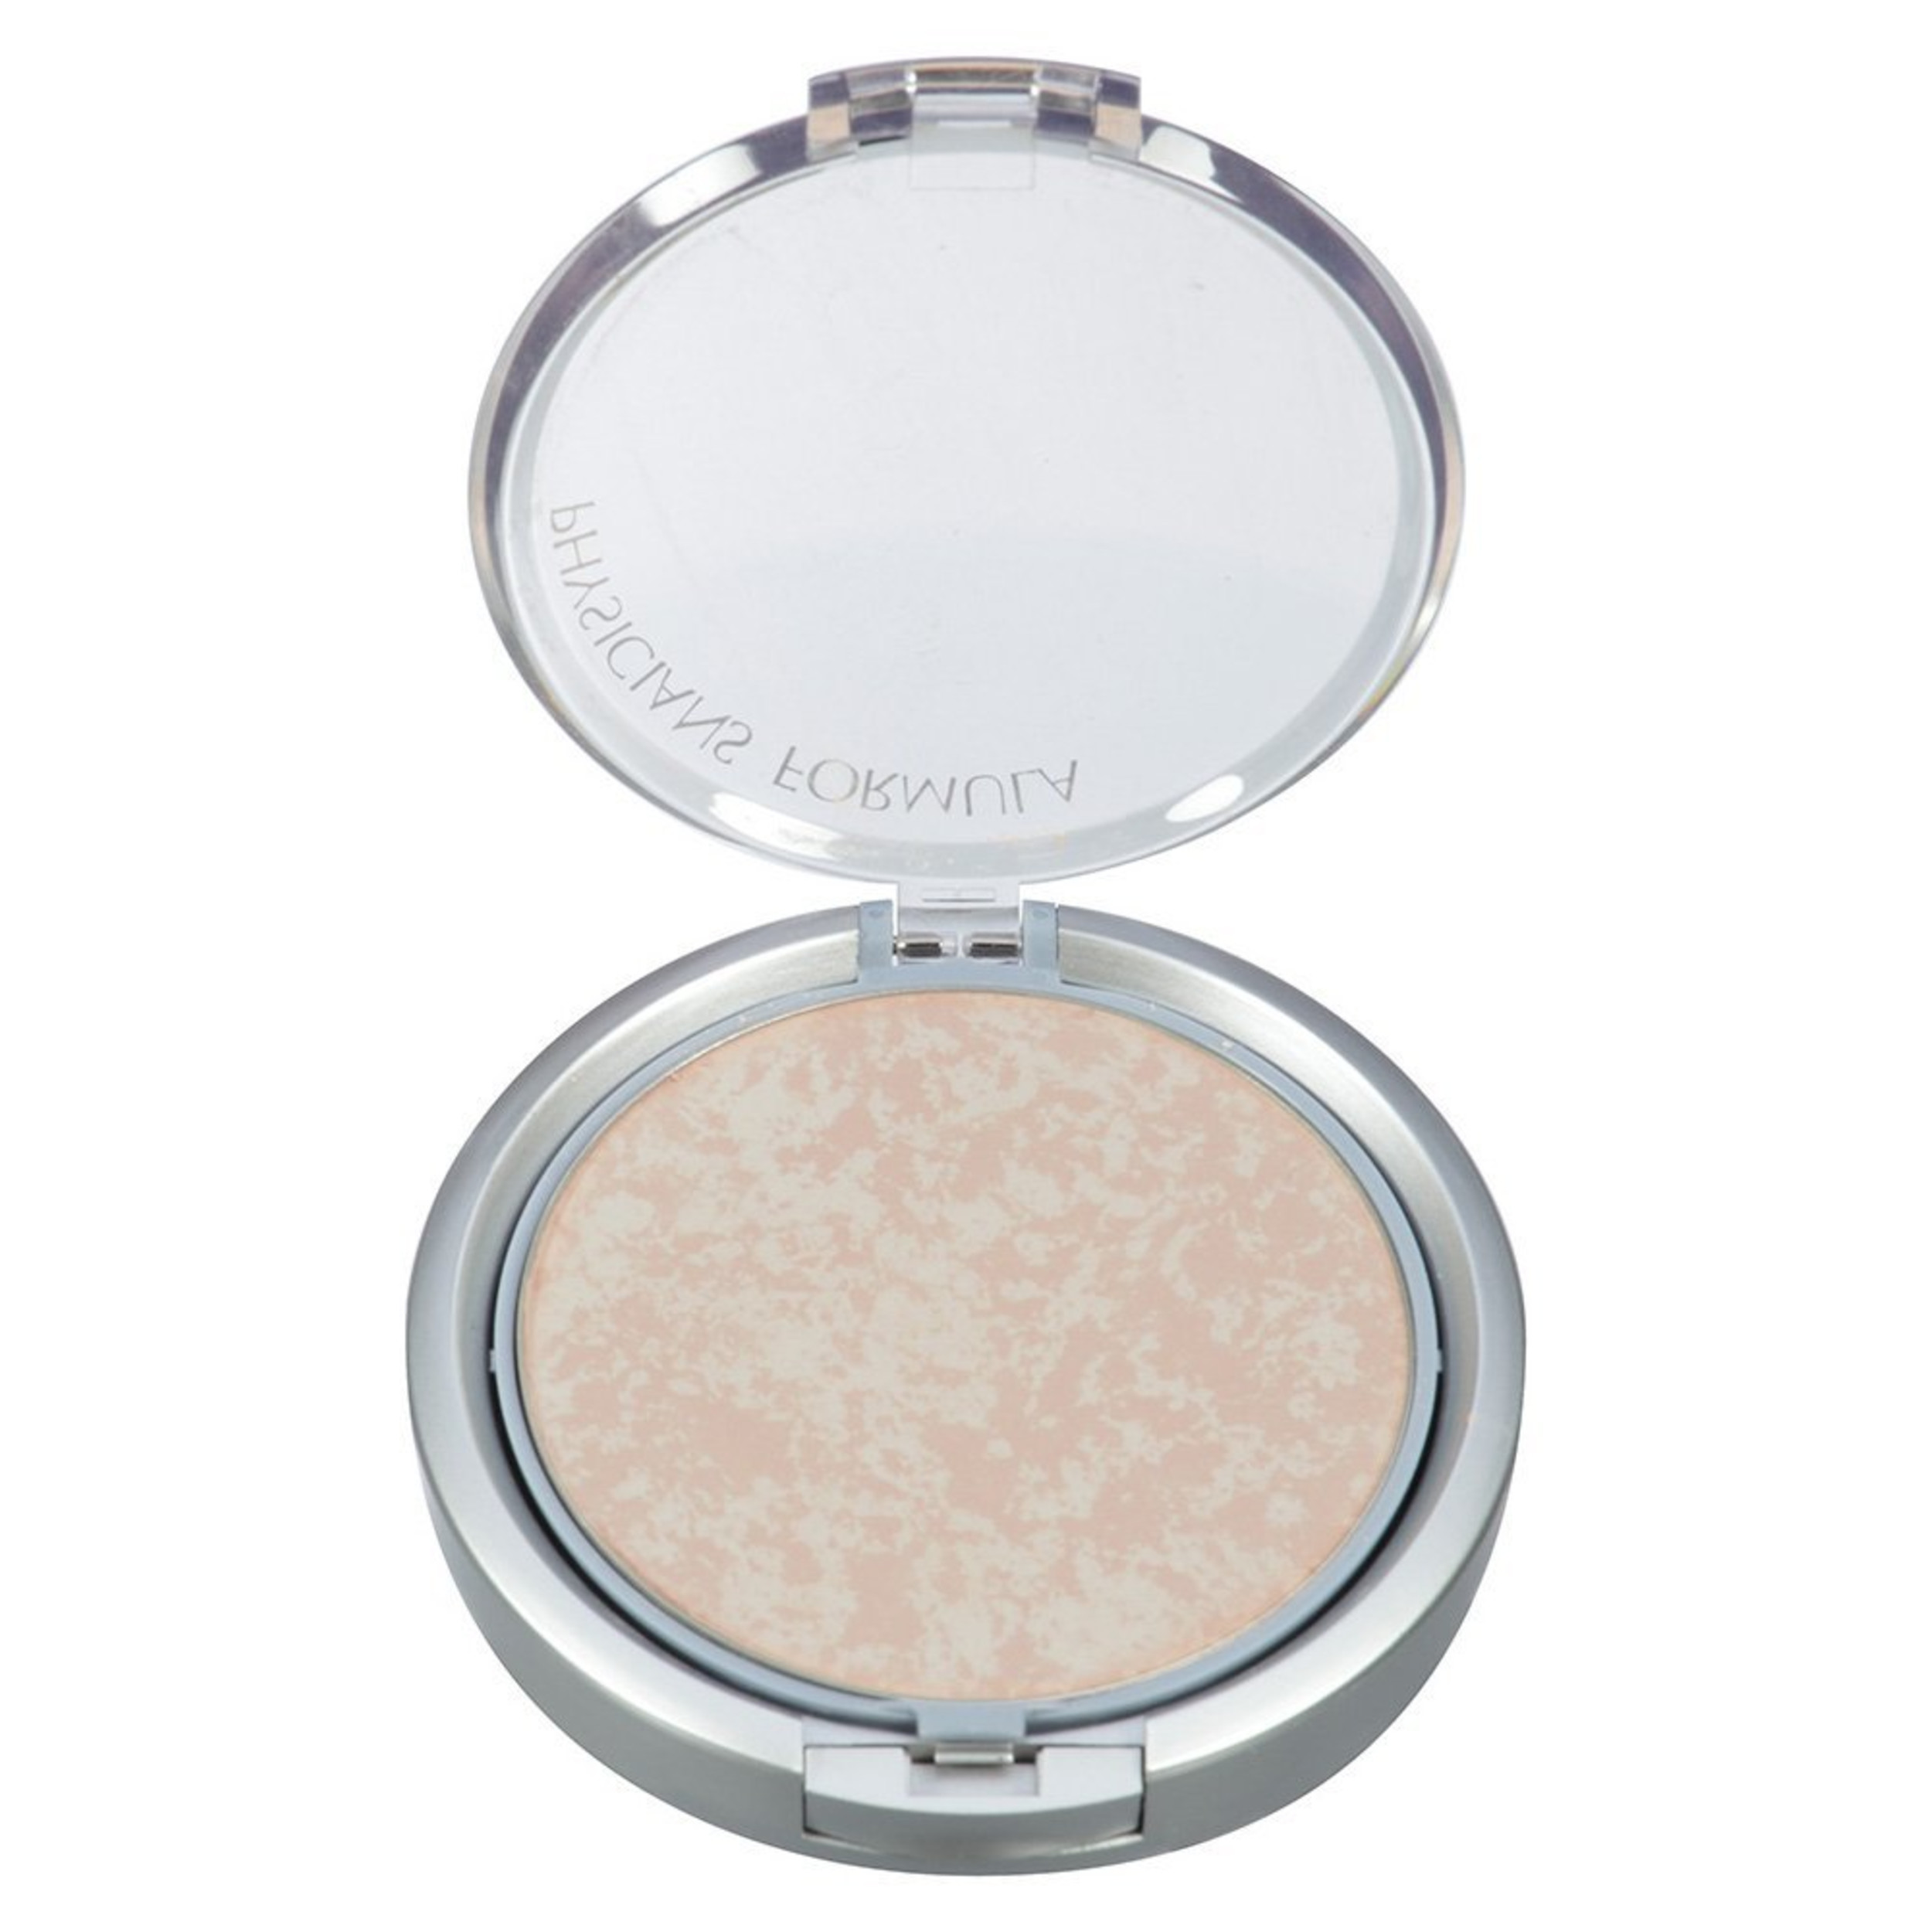 Physicians Formula Mineral Wear® Talc-Free Mineral Pressed Face Powder, Translucent Light